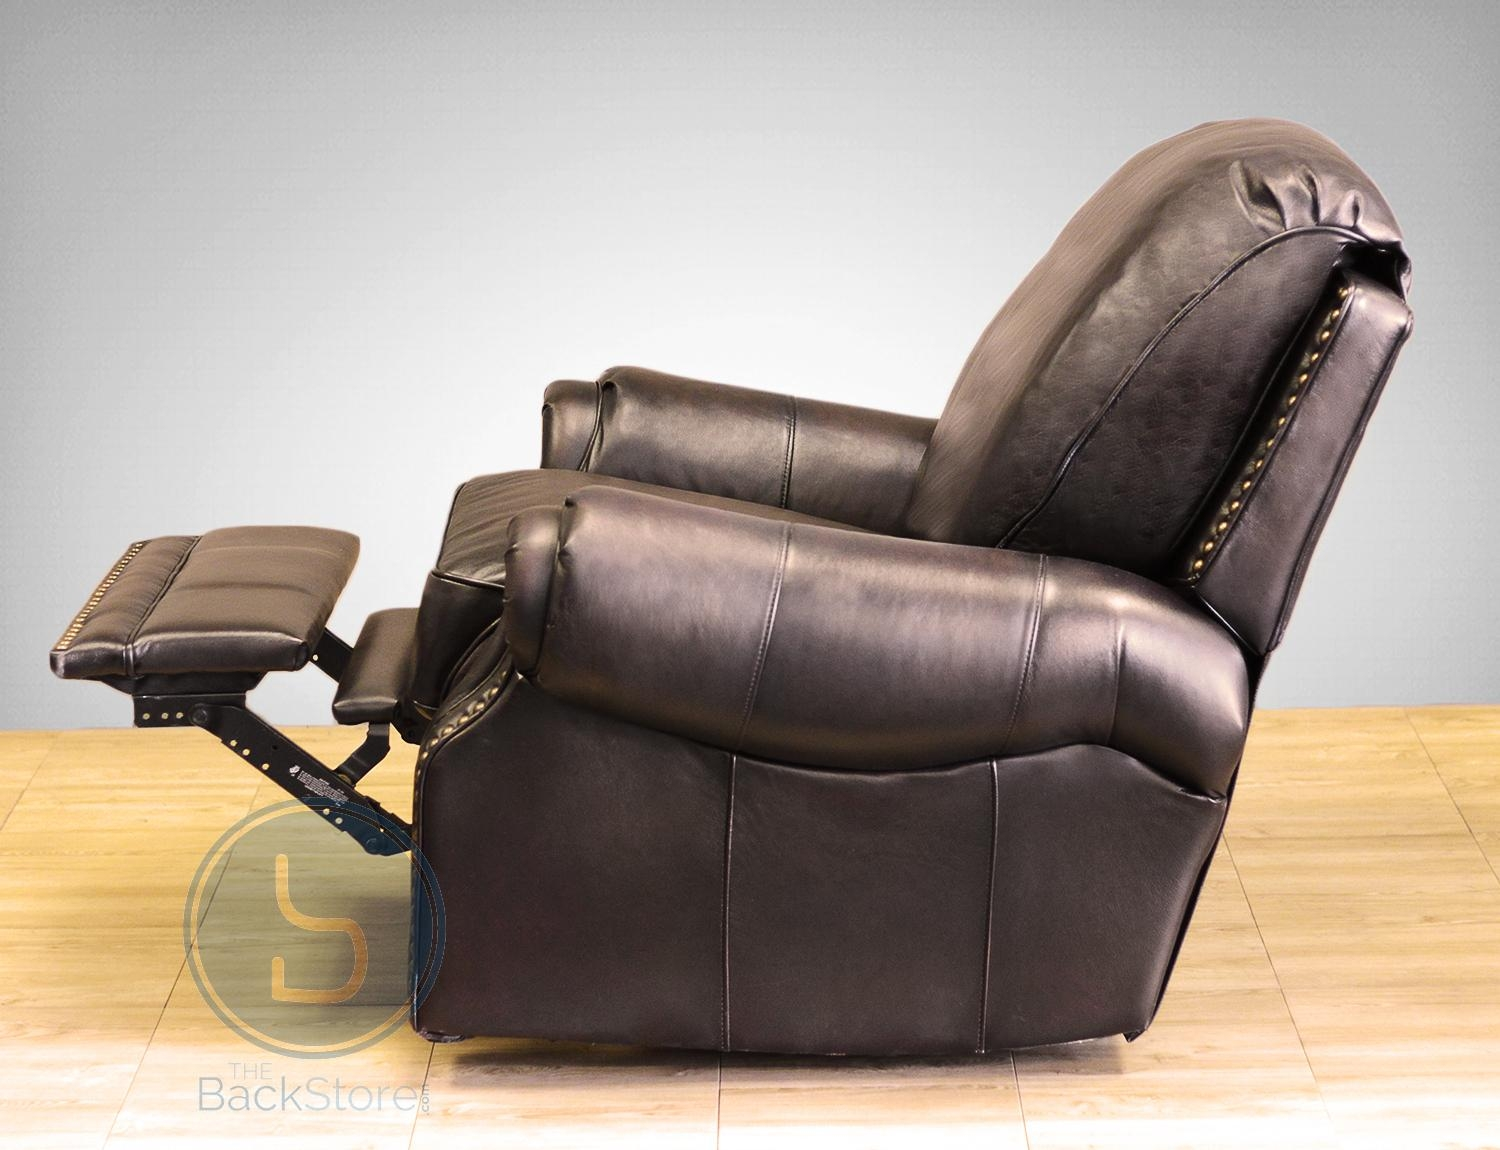 Barcalounger Premier Ii Leather Recliner Chair – Leather Recliner Throughout Barcalounger Sofas (Photo 12 of 20)